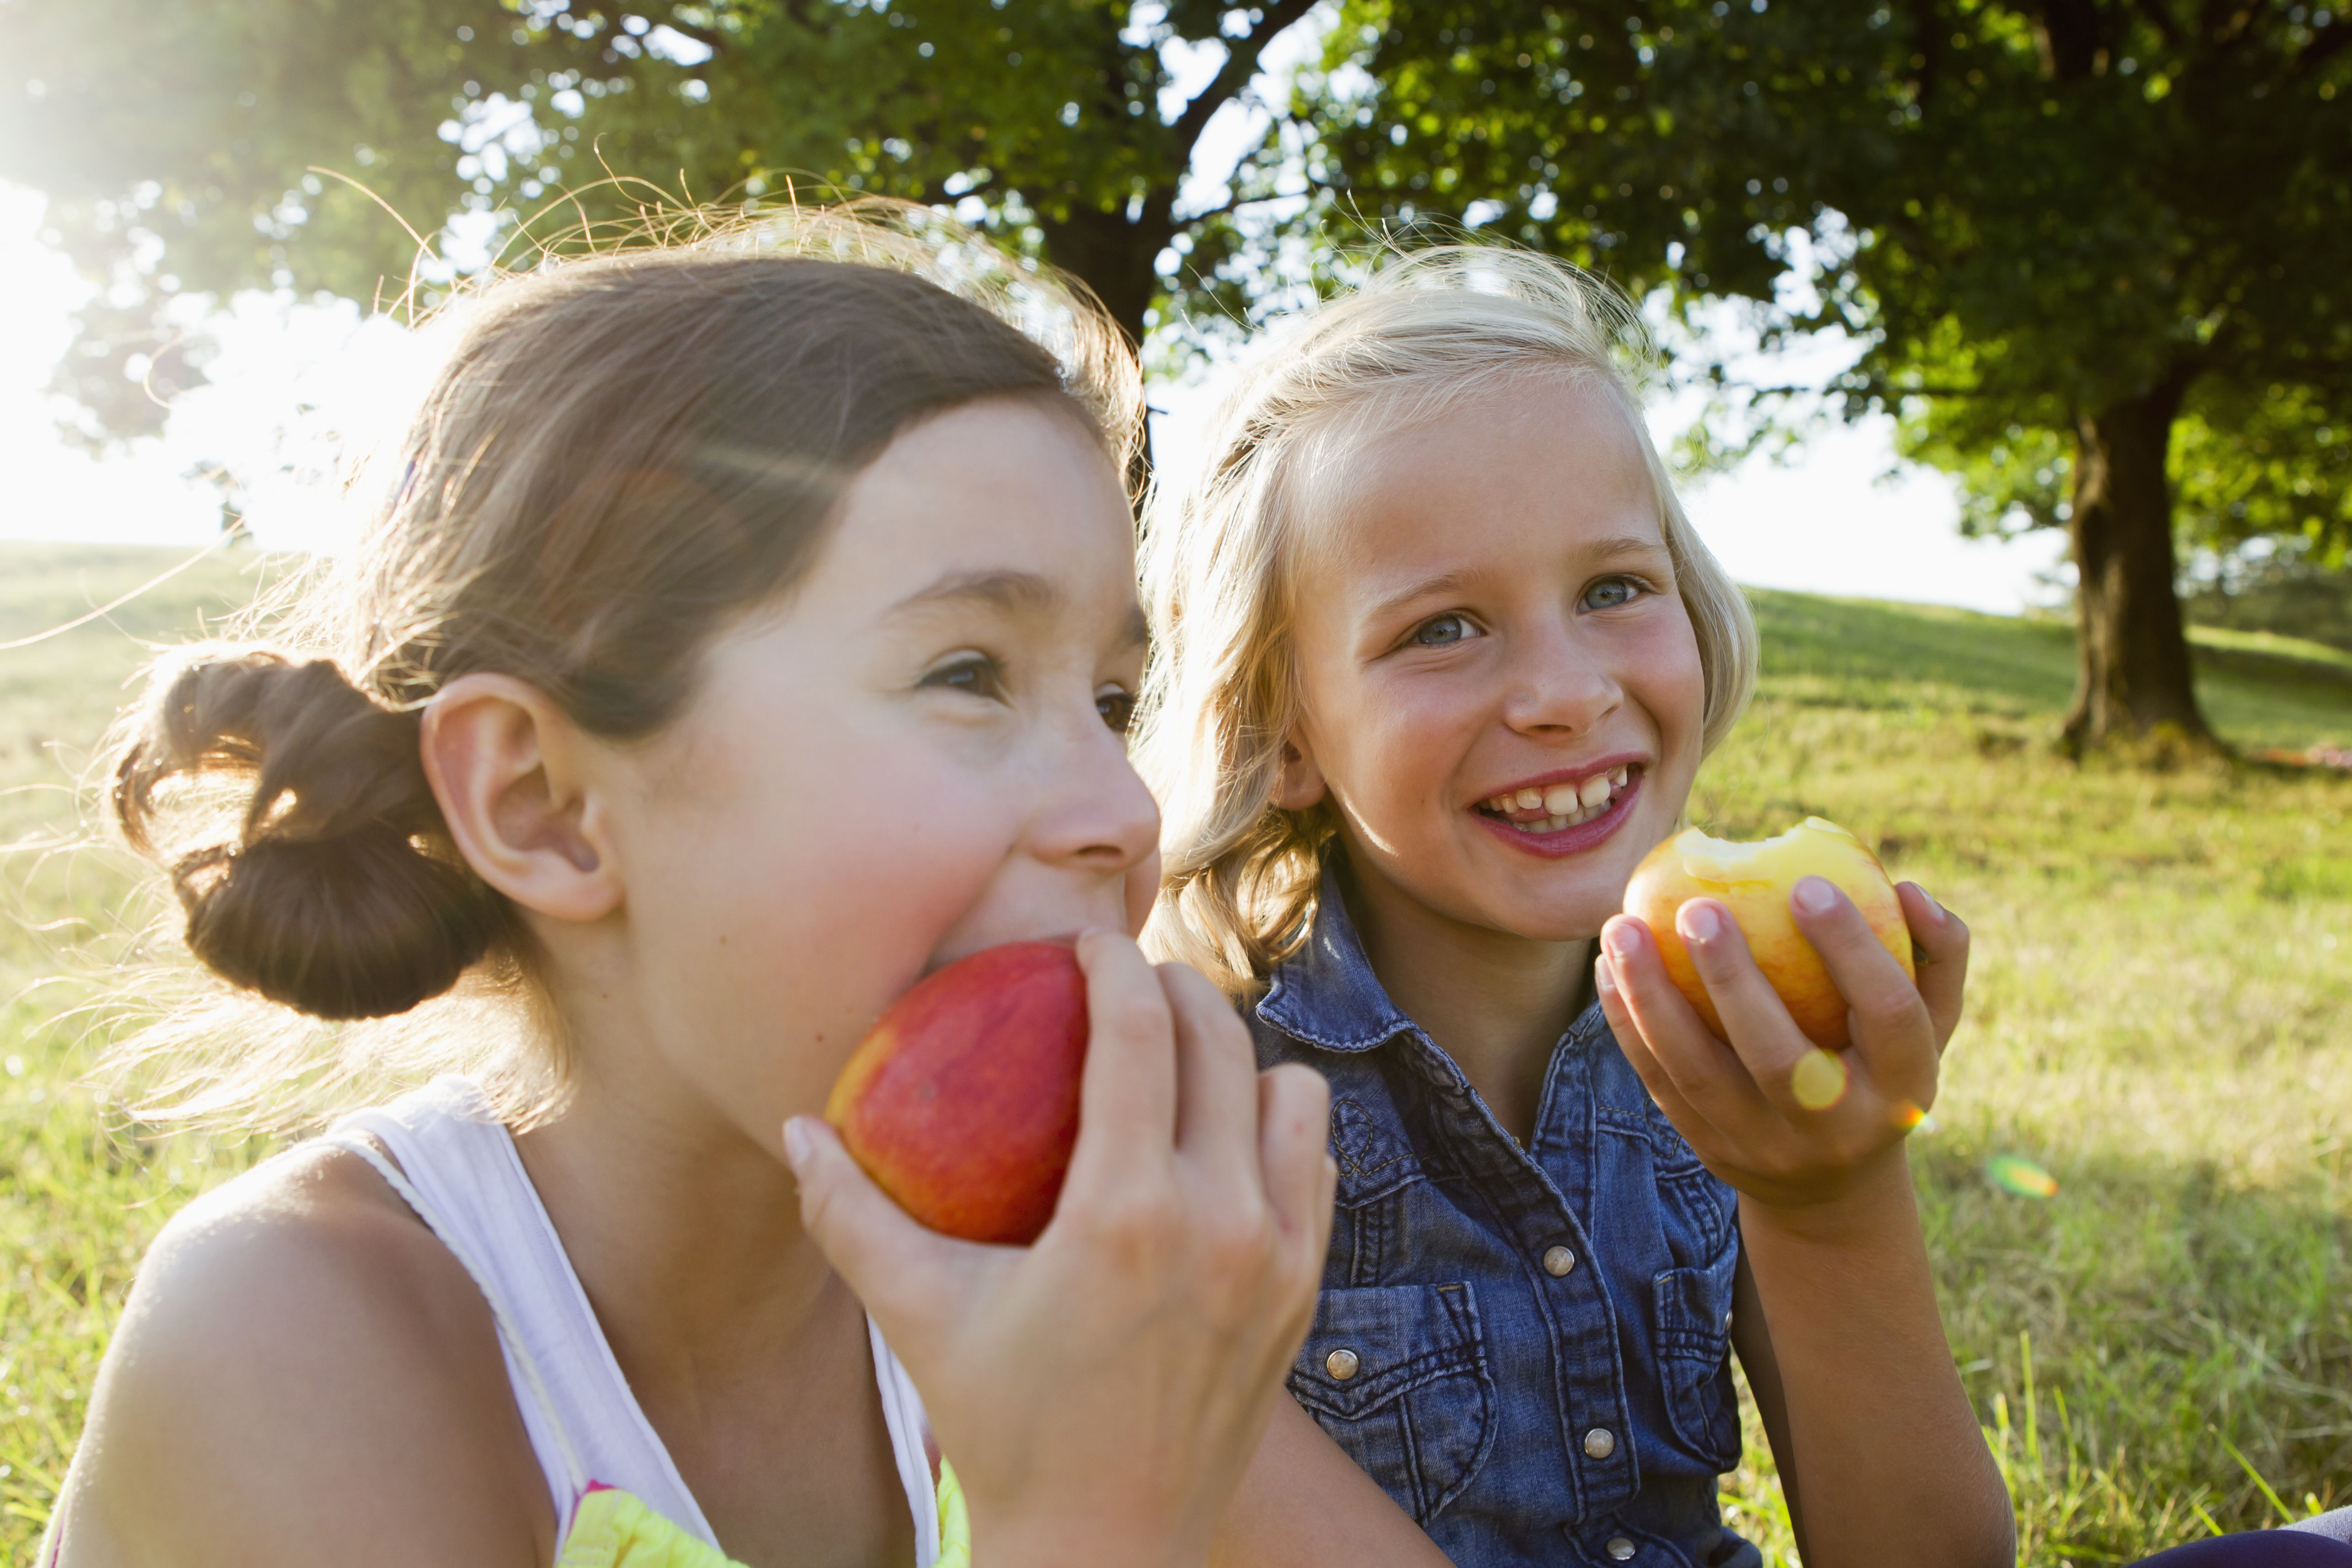 Health Safety And Nutrition Worksheets For Kids